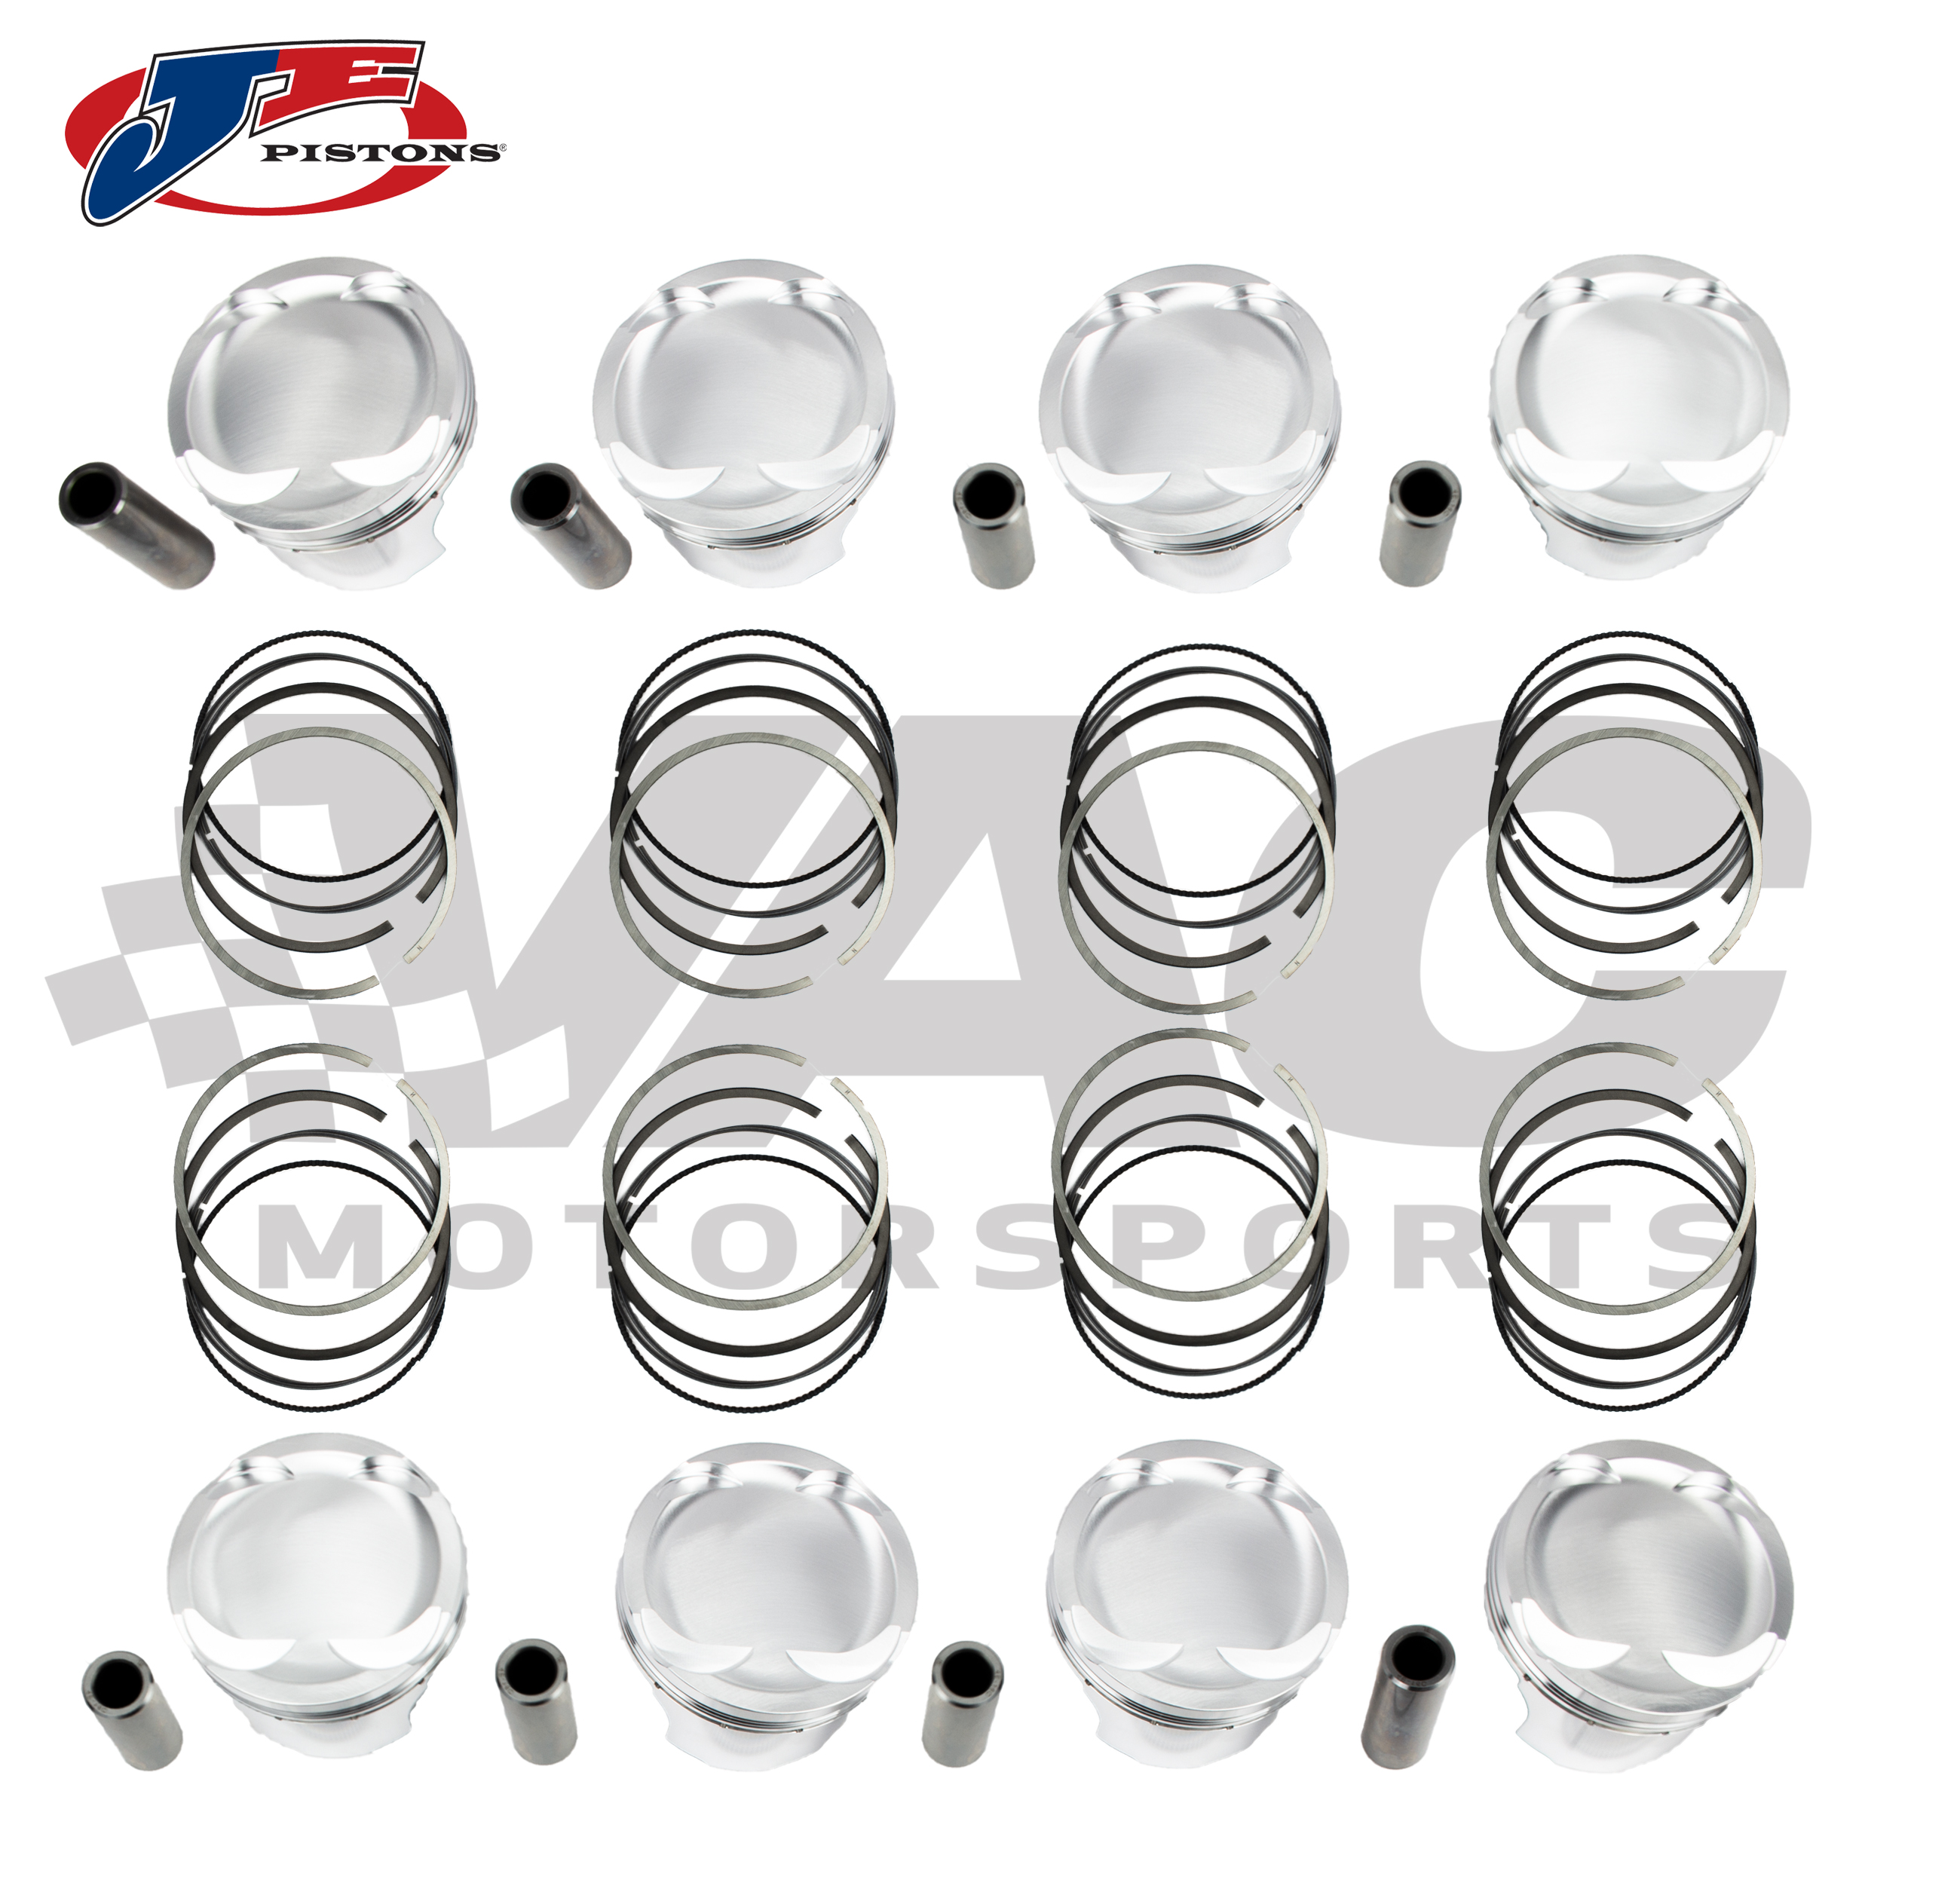 JE Pistons Forged Piston Set (BMW M62) THUMBNAIL